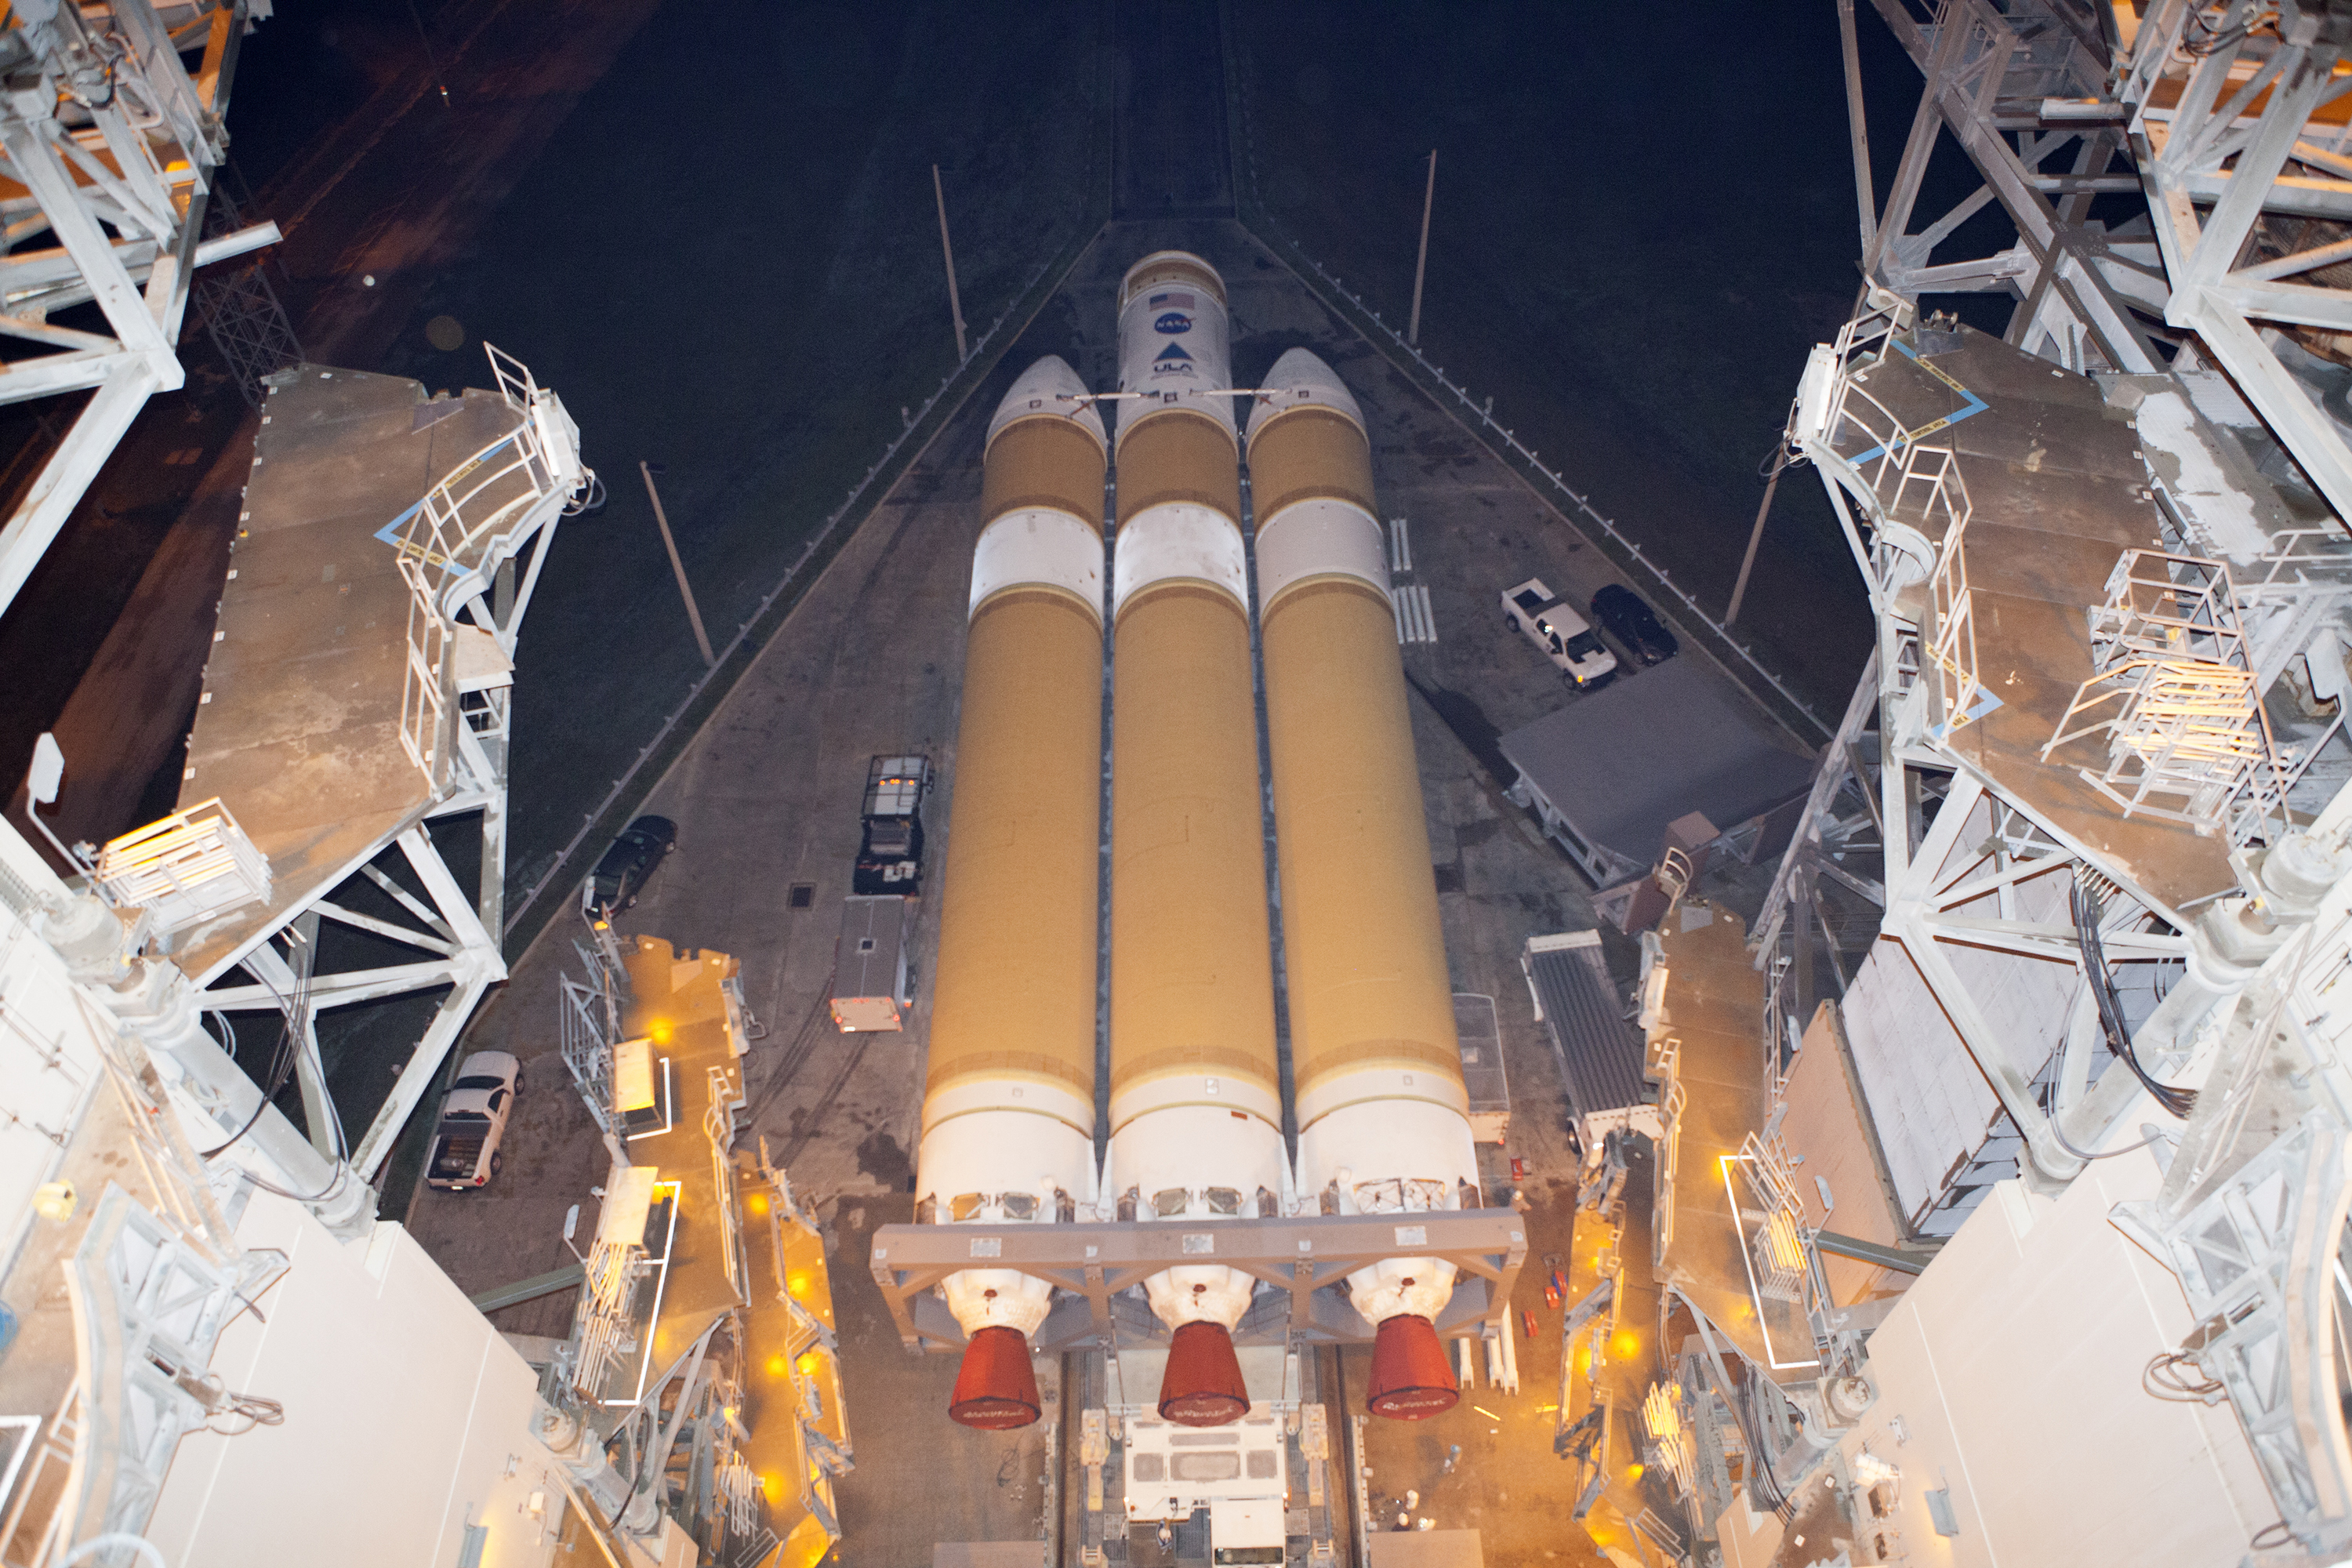 Delta IV Heavy Rocket Rolls to Launch Pad for Orion's ... | 3000 x 2000 jpeg 4616kB